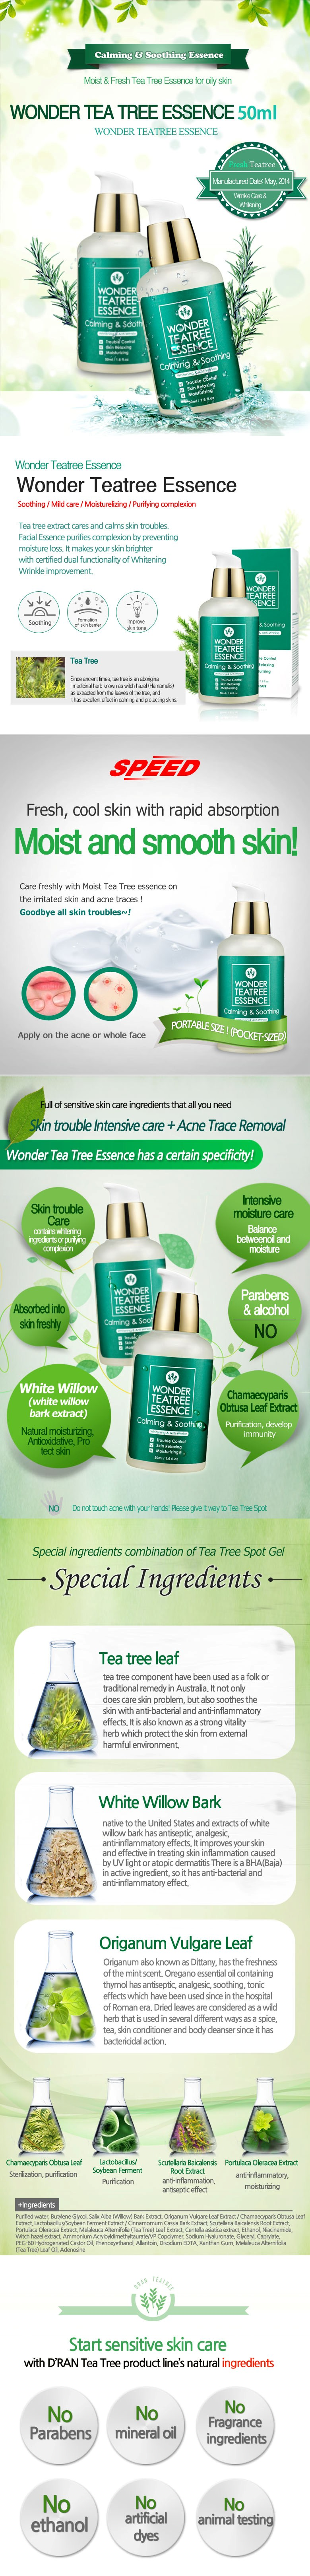 dran_wonder tea tree essence.jpg